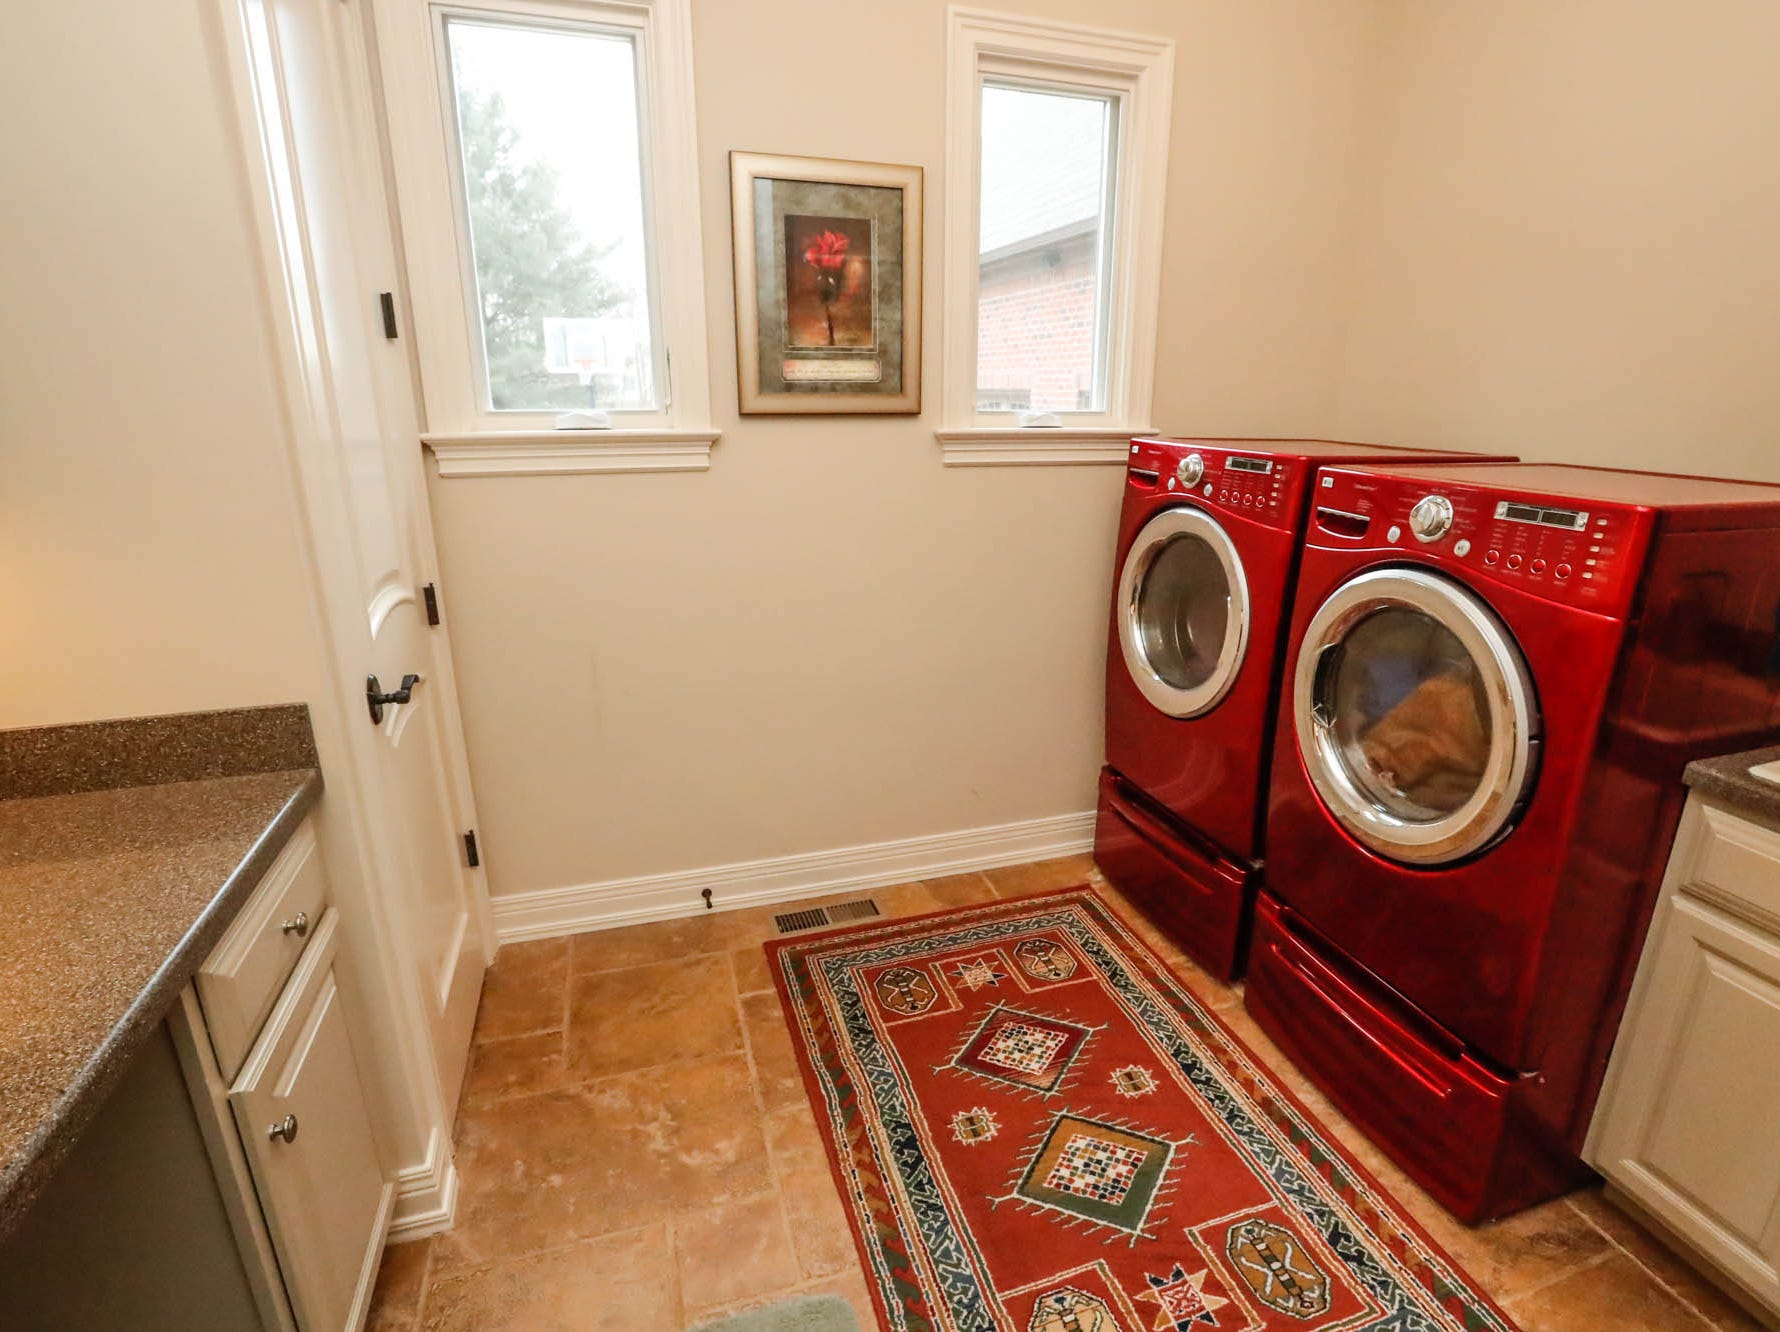 An upstairs and downstairs laundry room is featured in a traditional $2m home with elements of French country, and Tuscan influence features for sale in Bargersville Ind. on Wednesday, Jan. 9, 2019. The house sits on 8.1 acres.